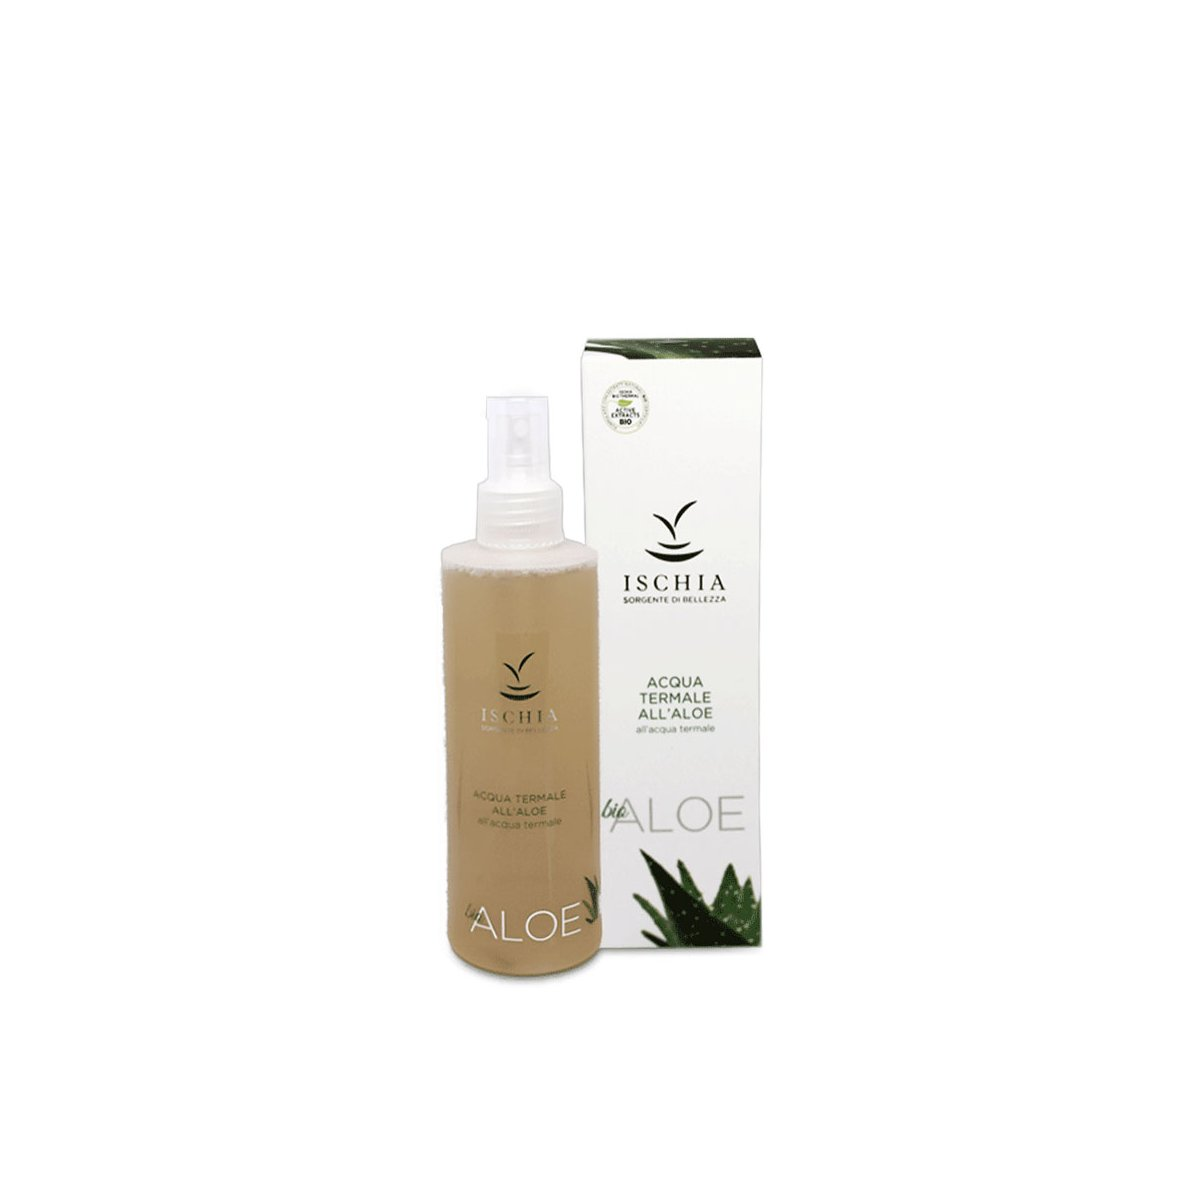 Acqua Termale spray Aloe 200 ml. - Ischia Sorgente di bellezza